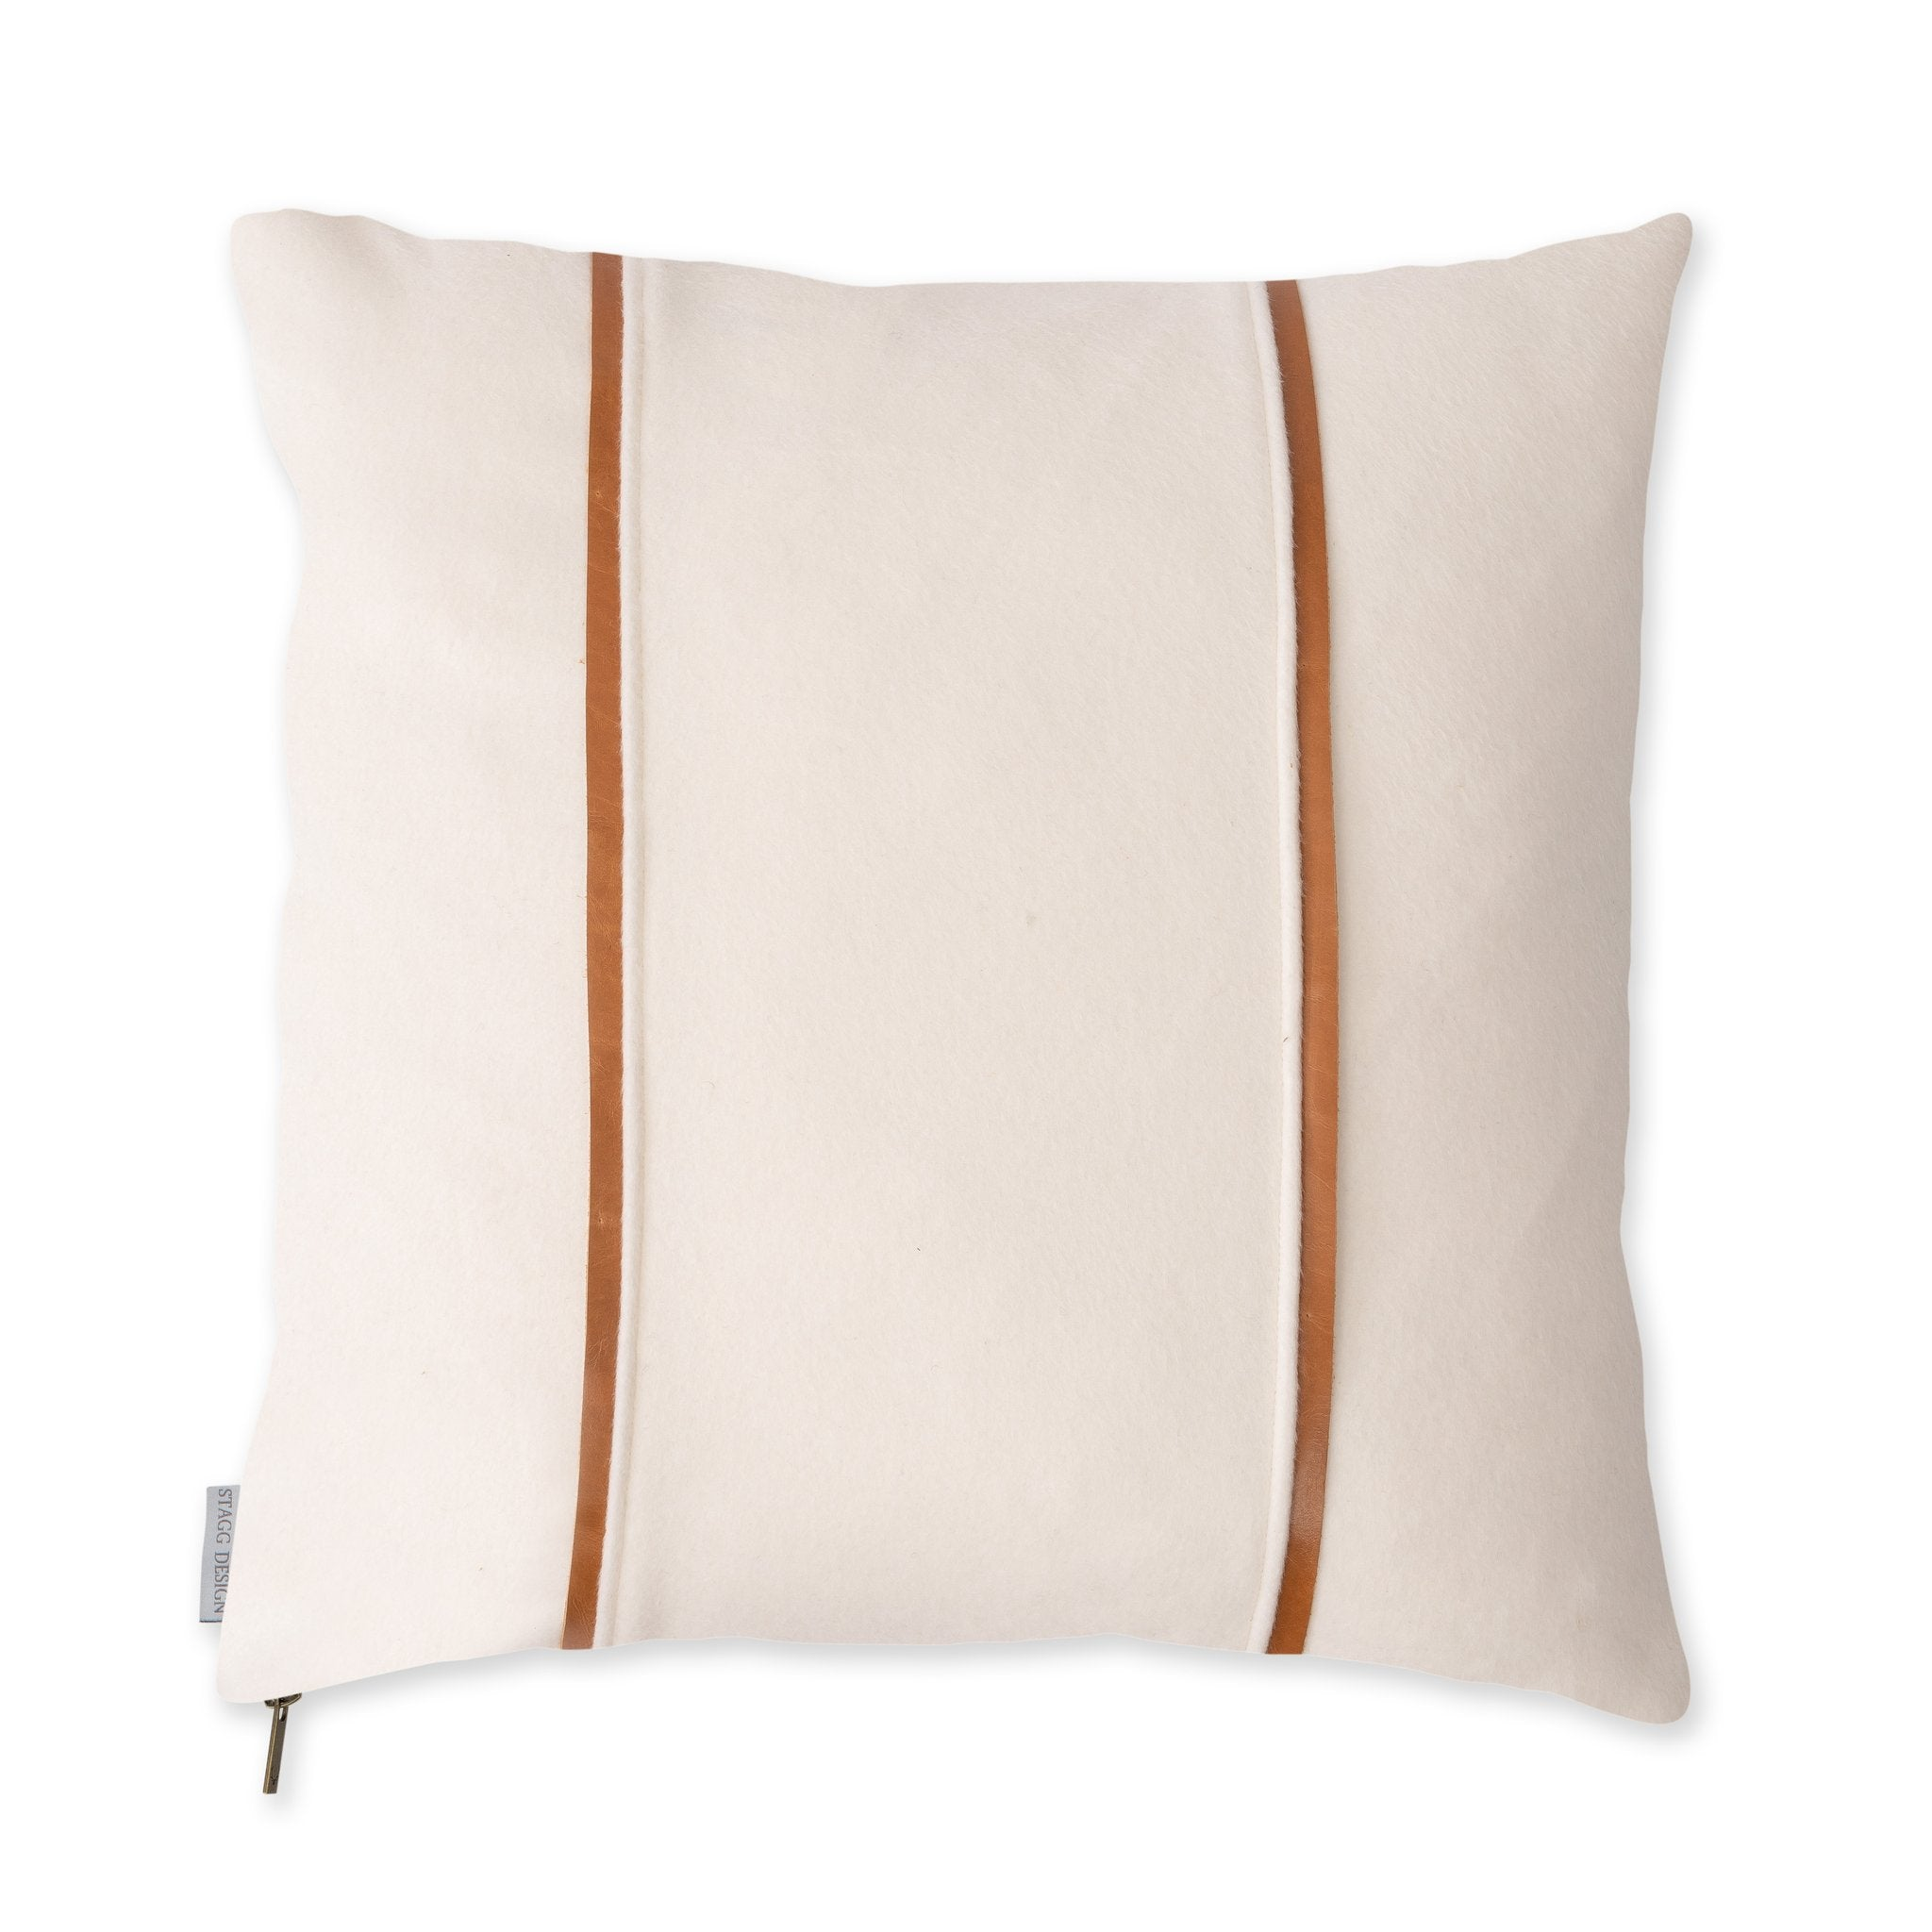 Evan Pillow Pairing (Set of 5)